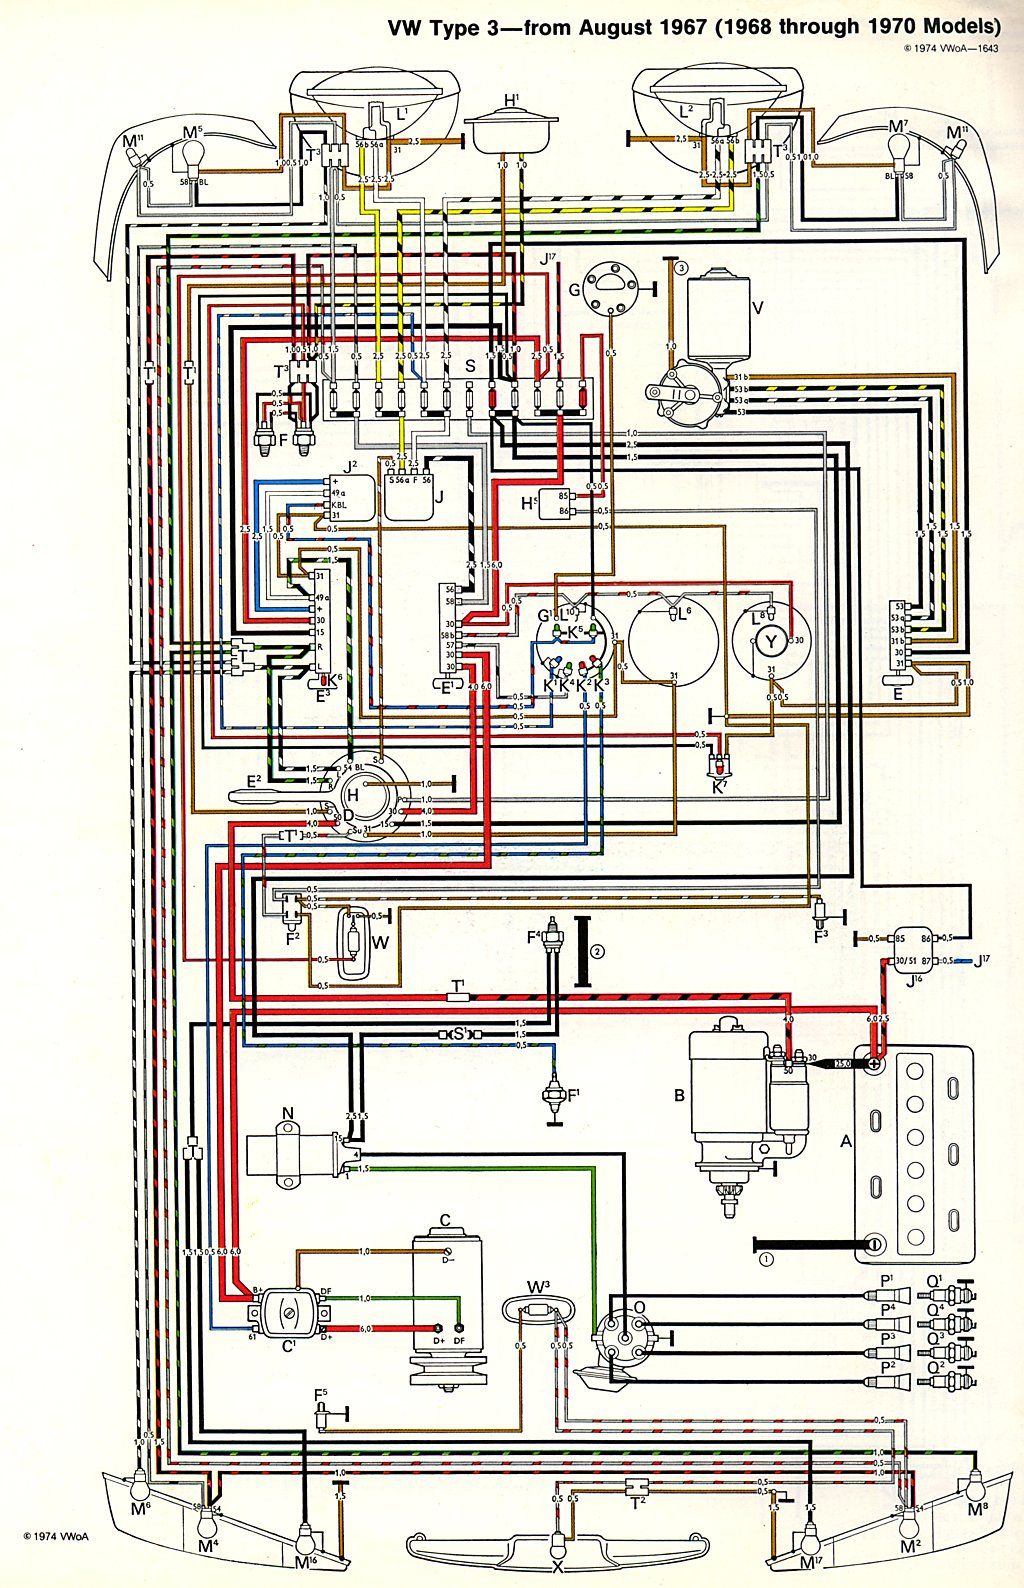 type3_6870 vw thing wiring diagram 1974 beetle heater diagram \u2022 wiring 1971 vw bus wiring diagram at gsmportal.co